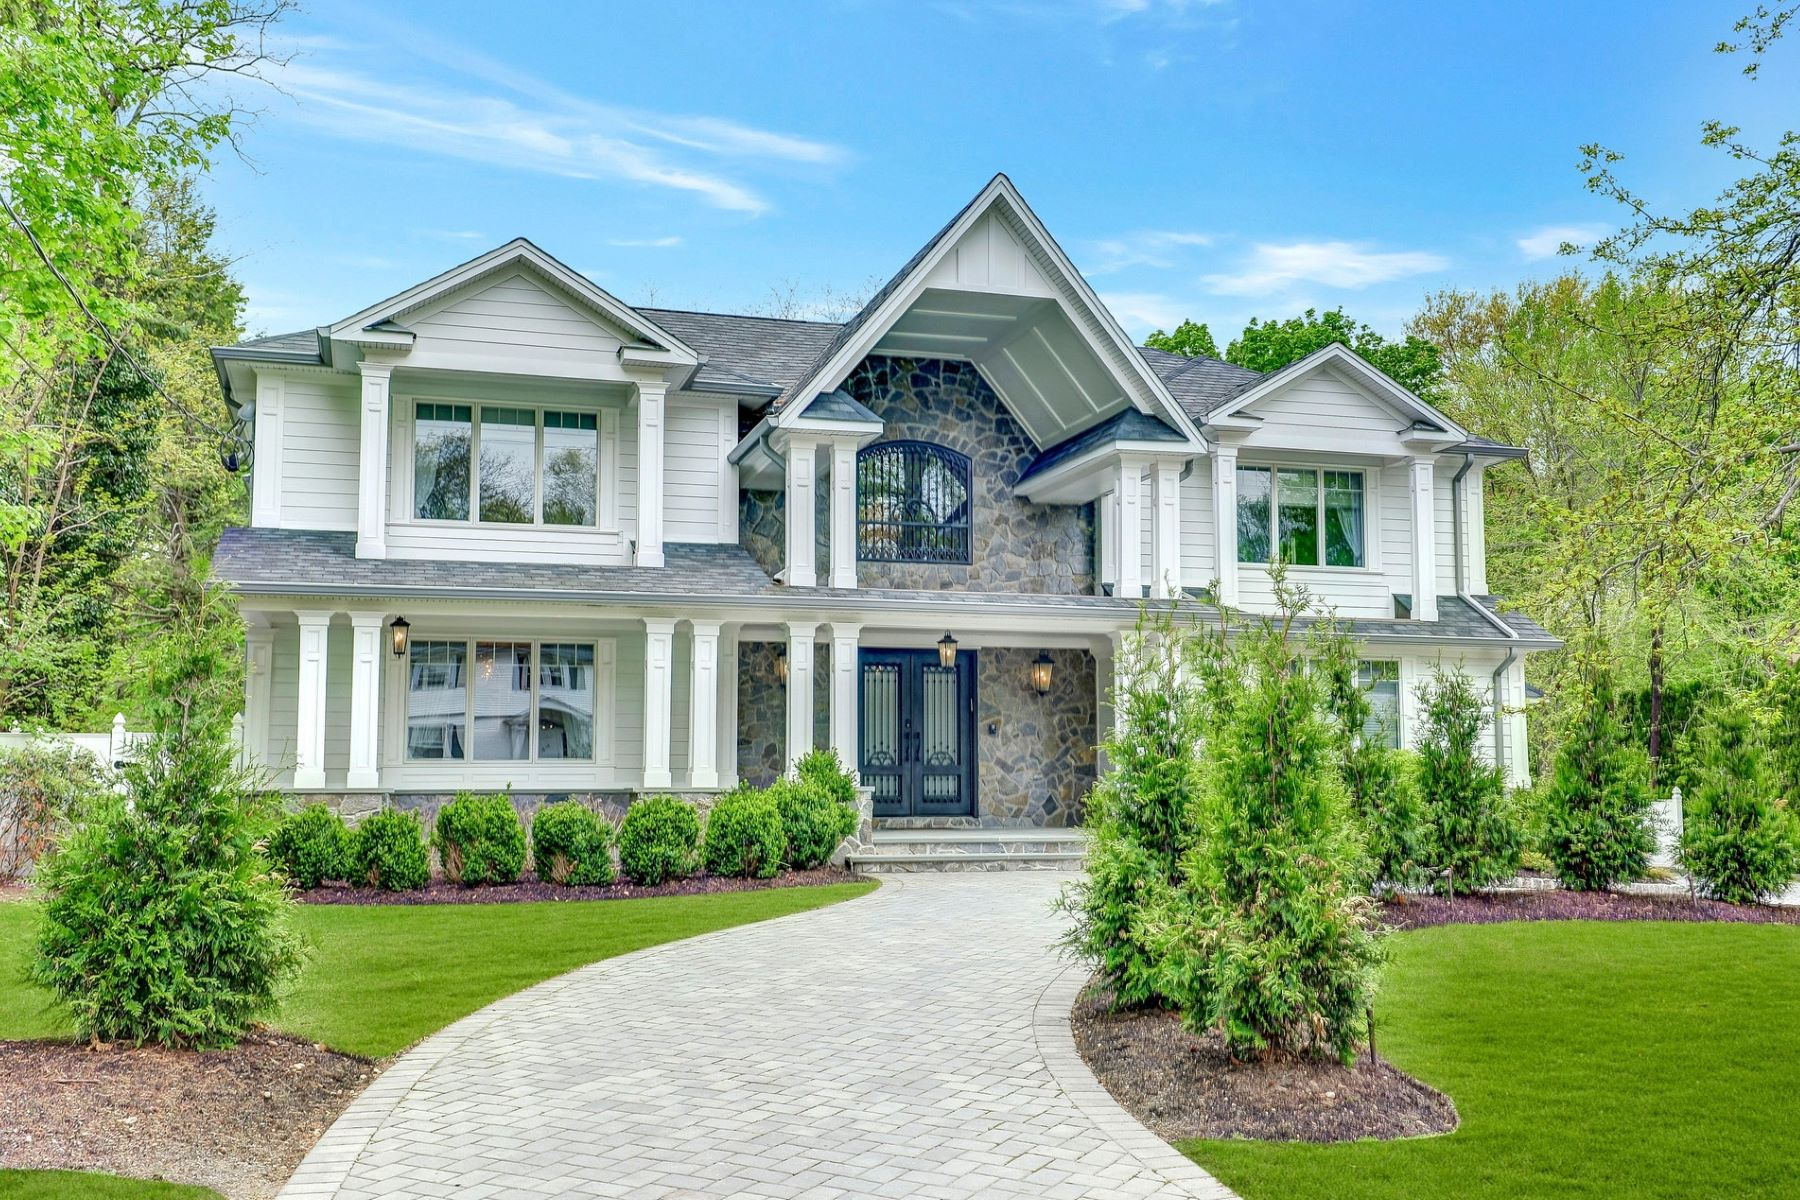 Single Family Homes for Sale at Luxury Lifestyle 53 Orchard Road, Demarest, New Jersey 07627 United States